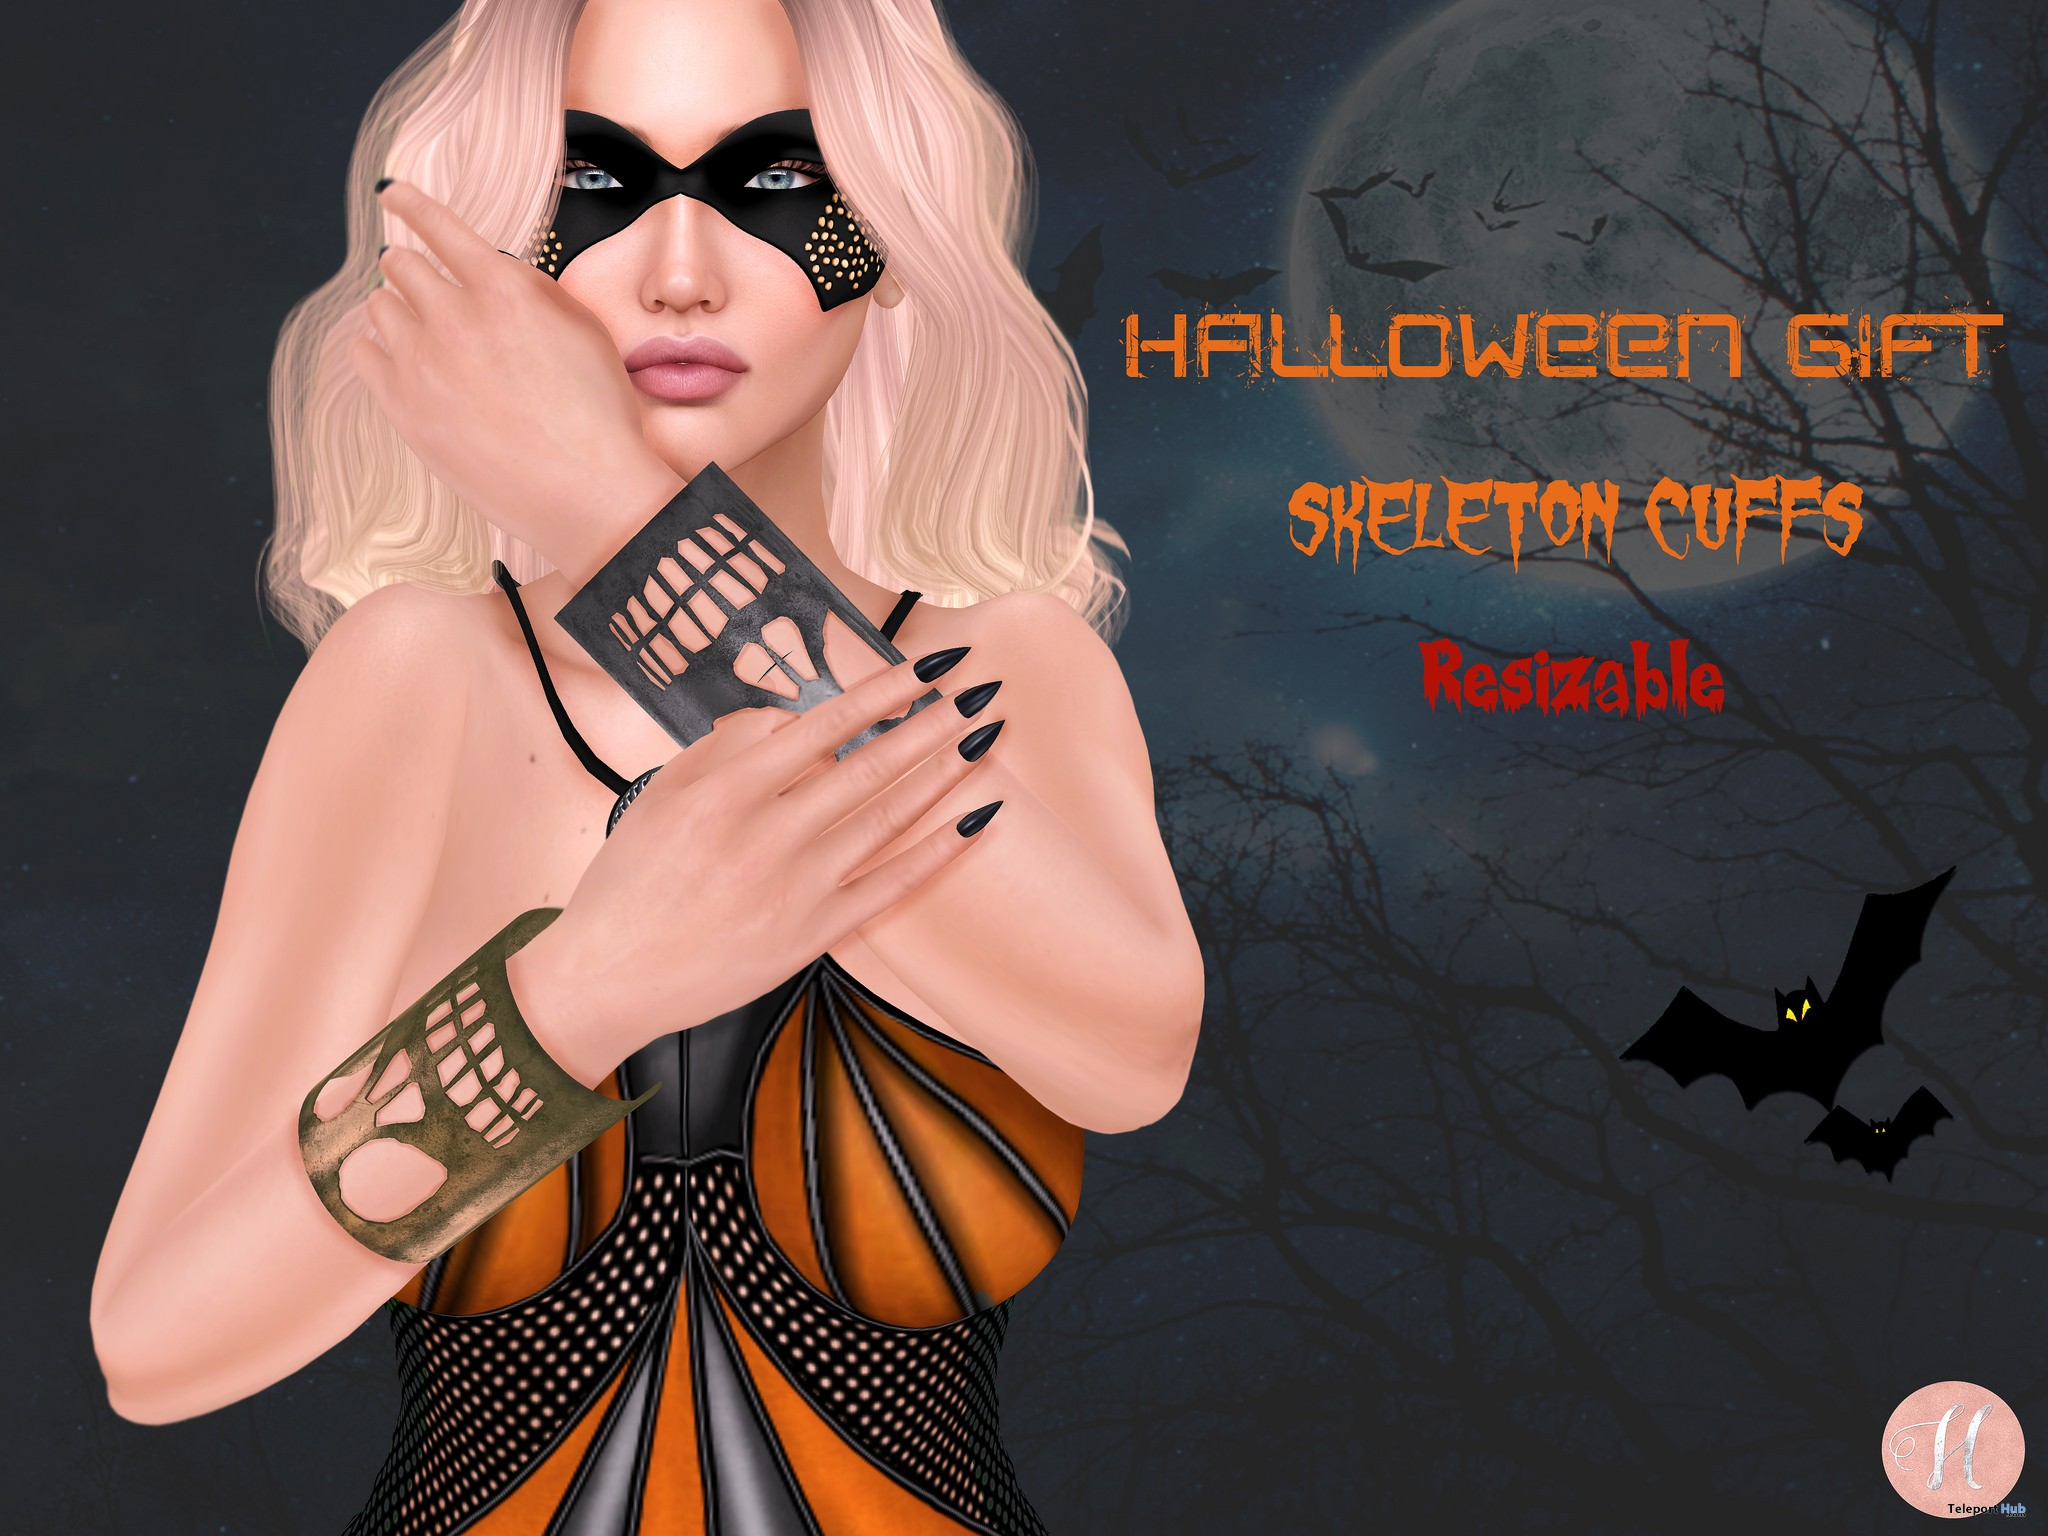 Skeleton Cuffs October 2017 Group Gift by Hilly Haalan - Teleport Hub - teleporthub.com